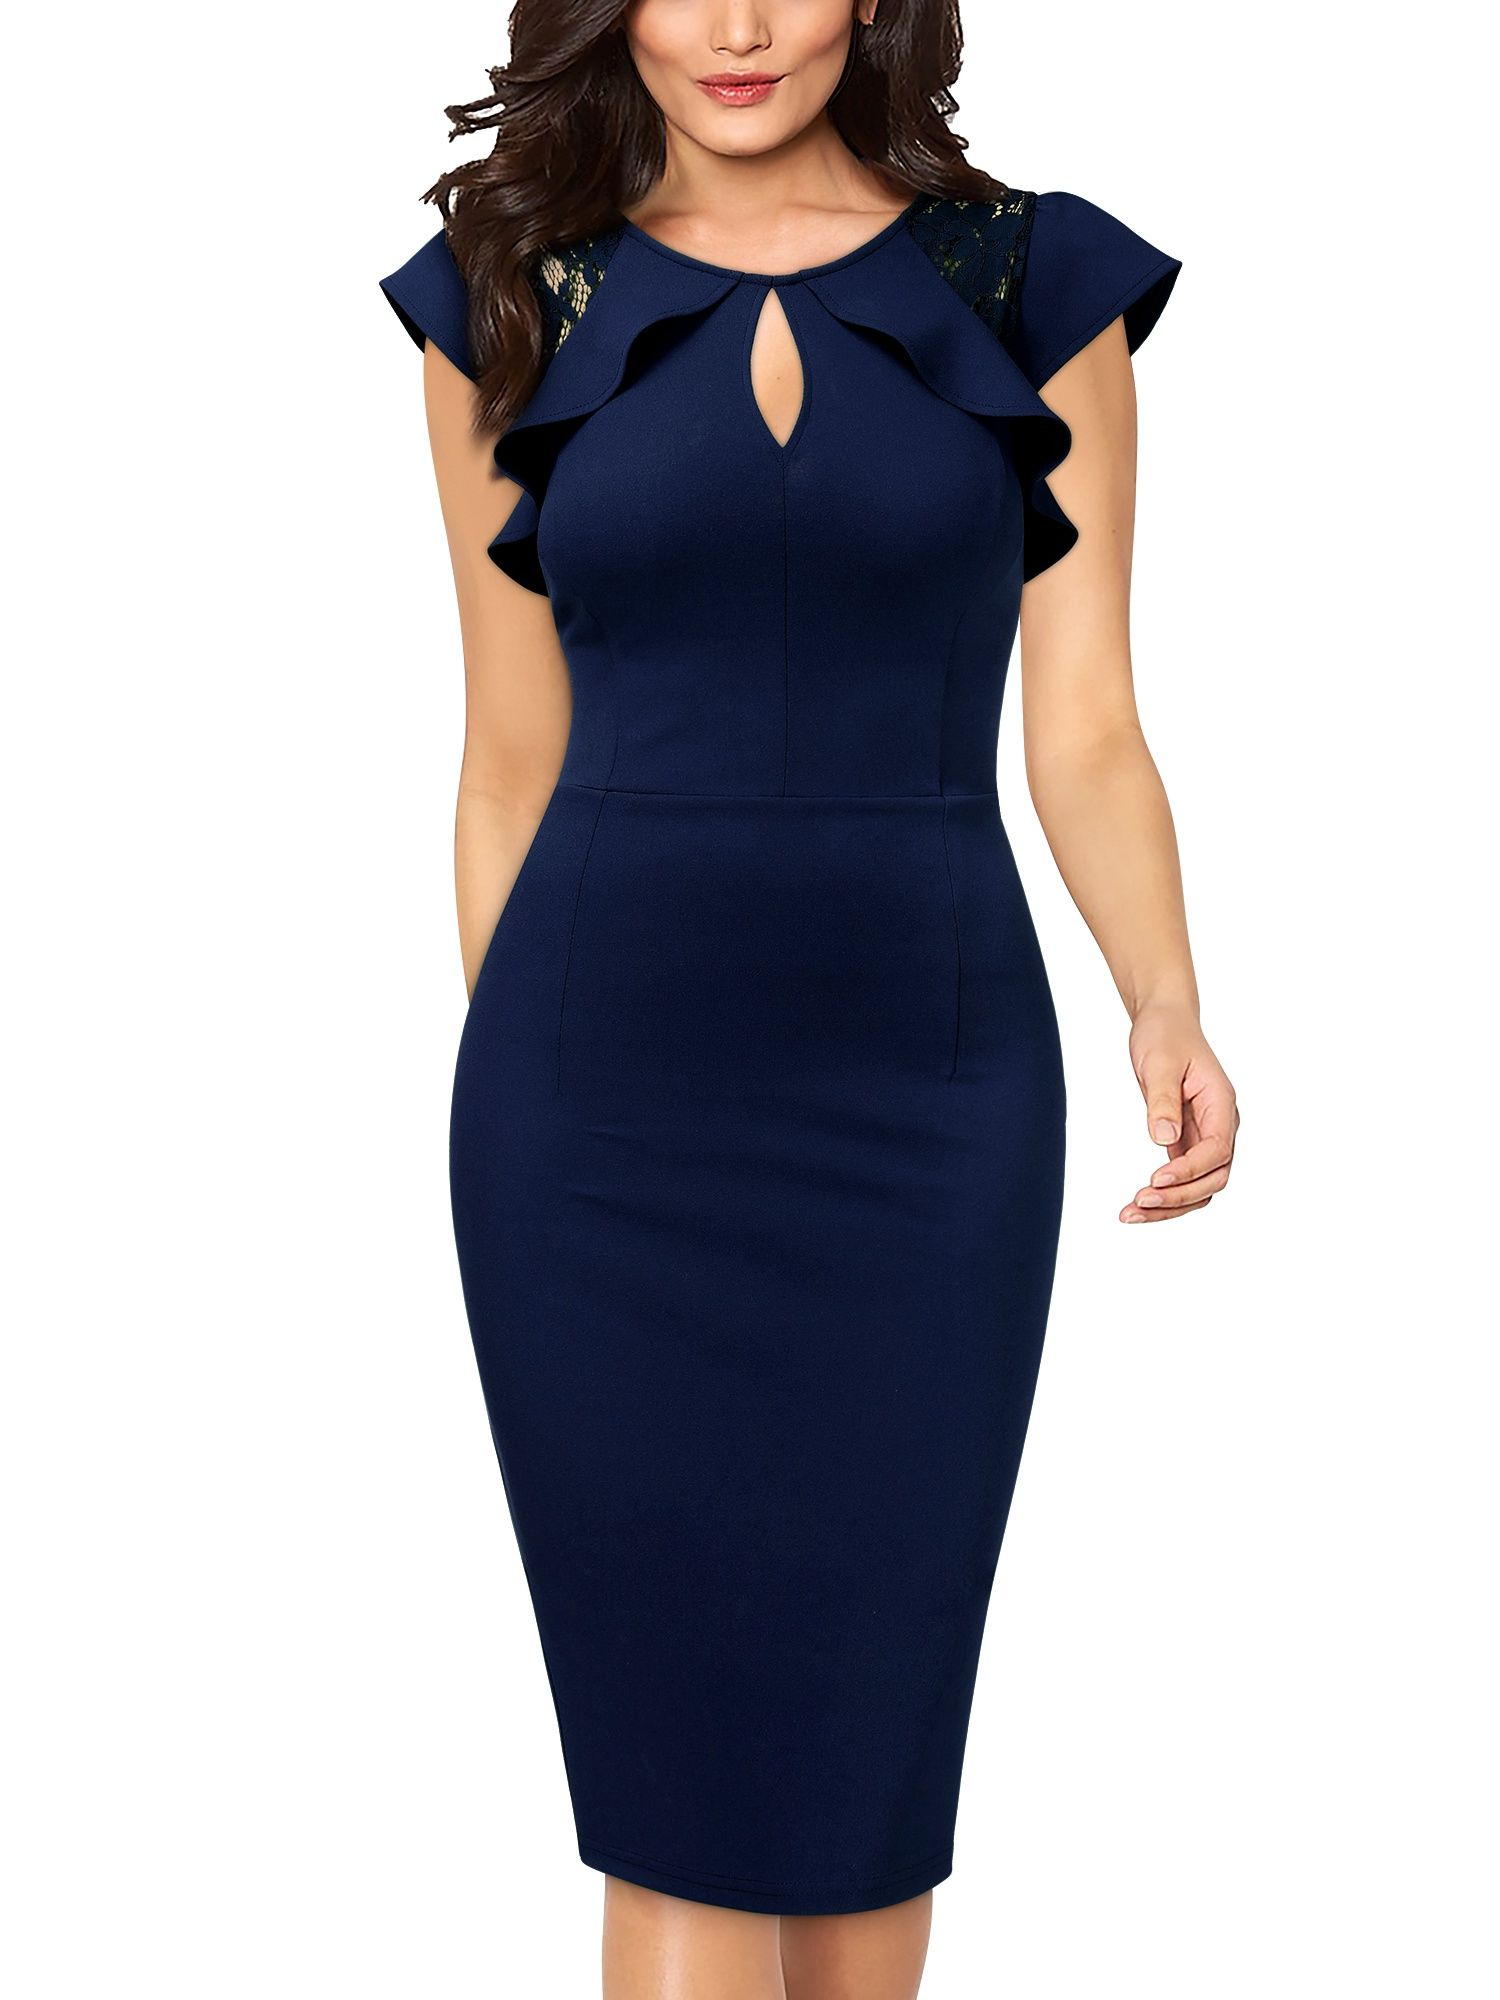 Free 2 Day Shipping Buy Women S Formal Work Pencil Dresses Cocktail Party Bodycon Dresses Navy Blue L Bodycon Dress Parties Bodycon Dress Cocktail Dress Party [ 2000 x 1500 Pixel ]